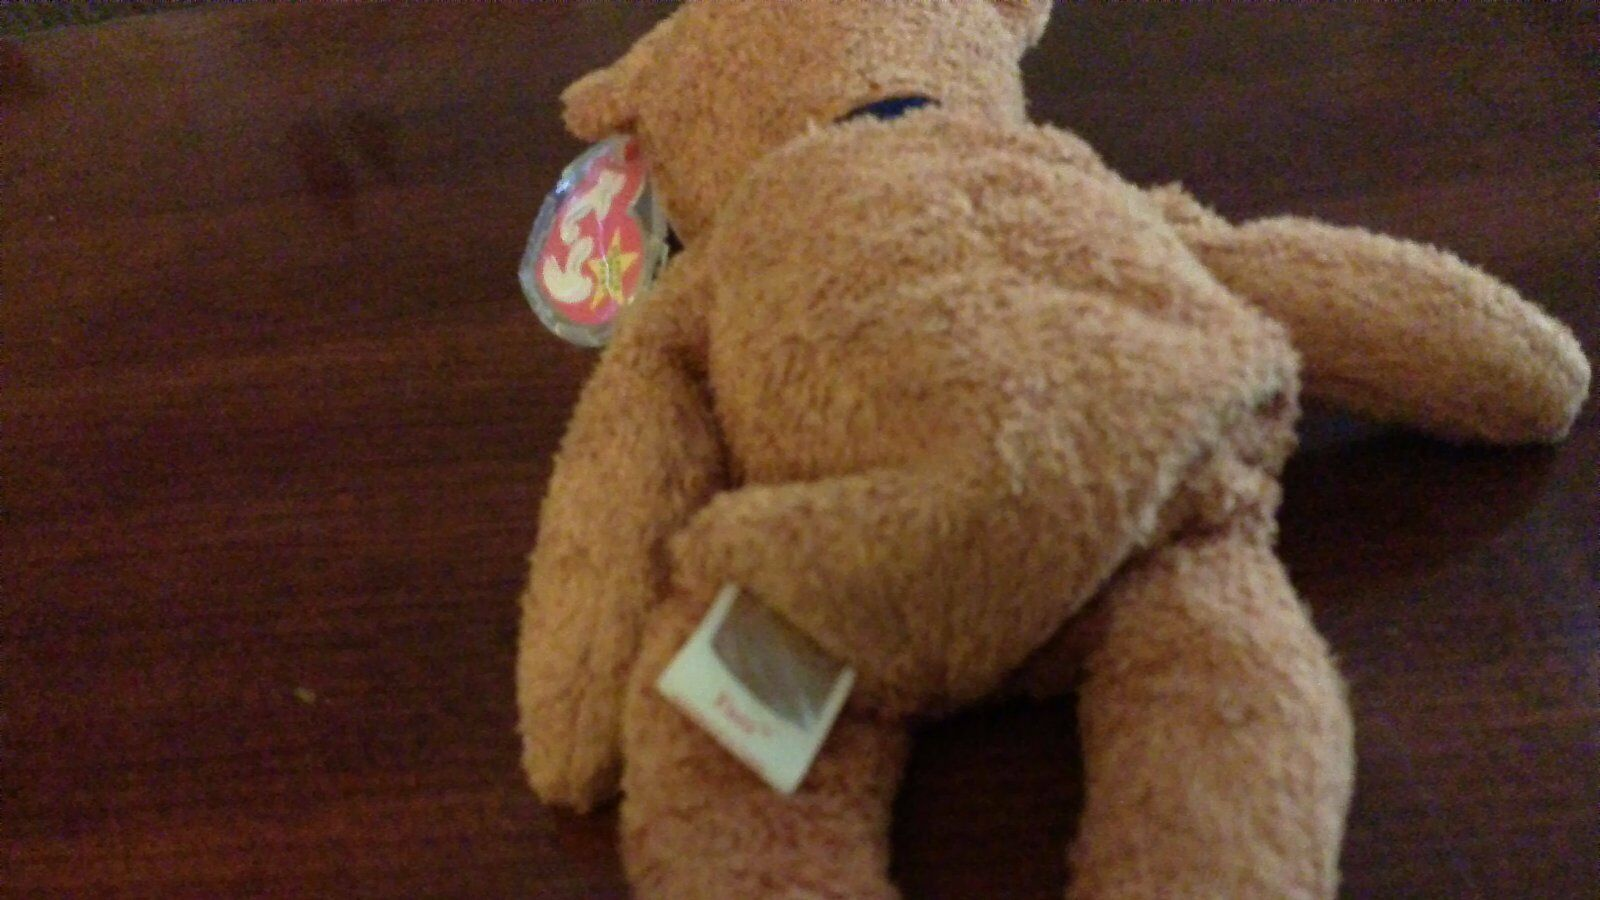 Fuzz beanie baby with with with plastic heart tag case and shiny tush tag c6650e